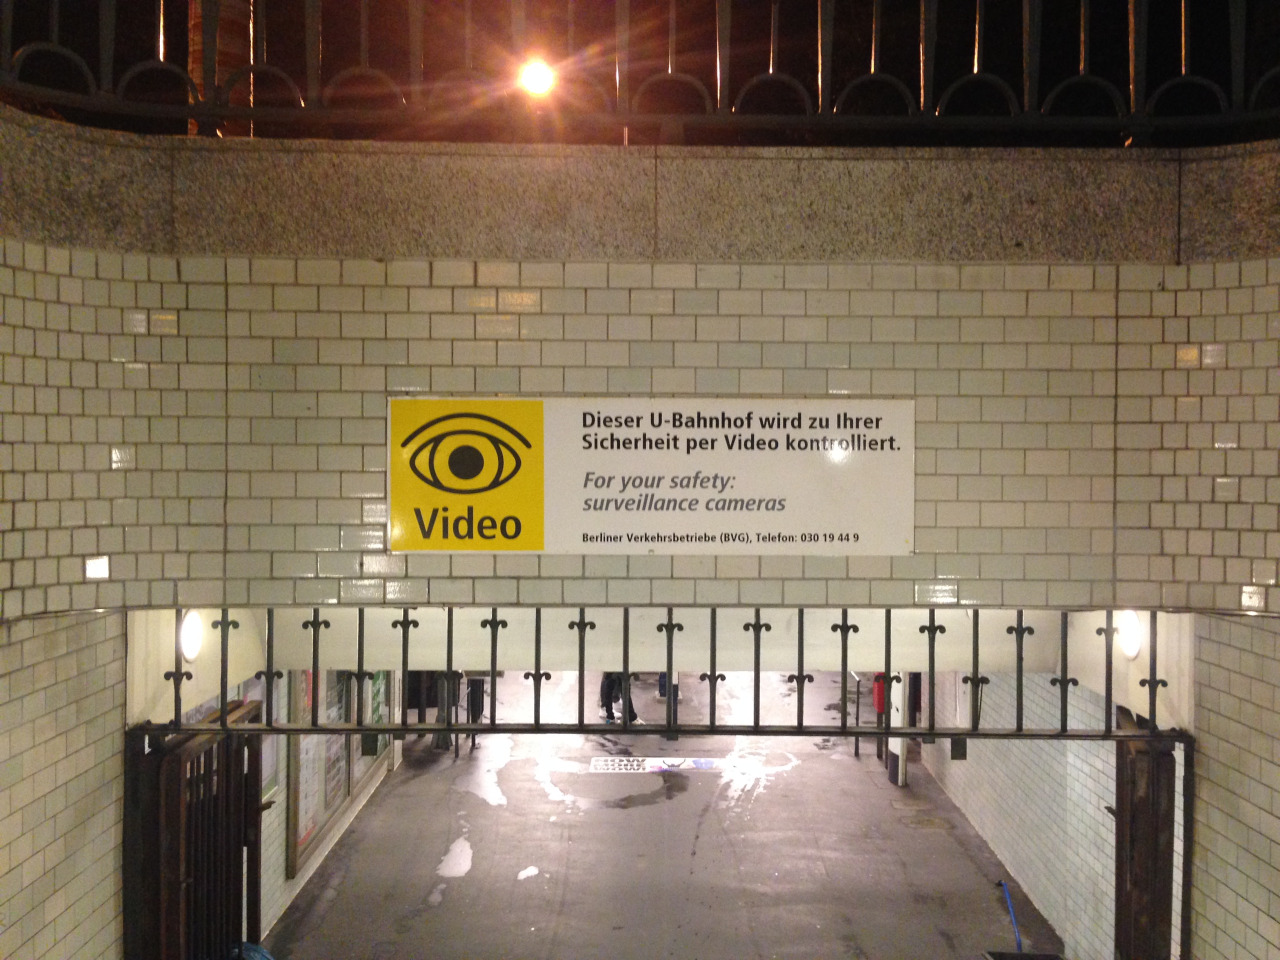 Underground station, Berlin, Germany. October 2014.jpg